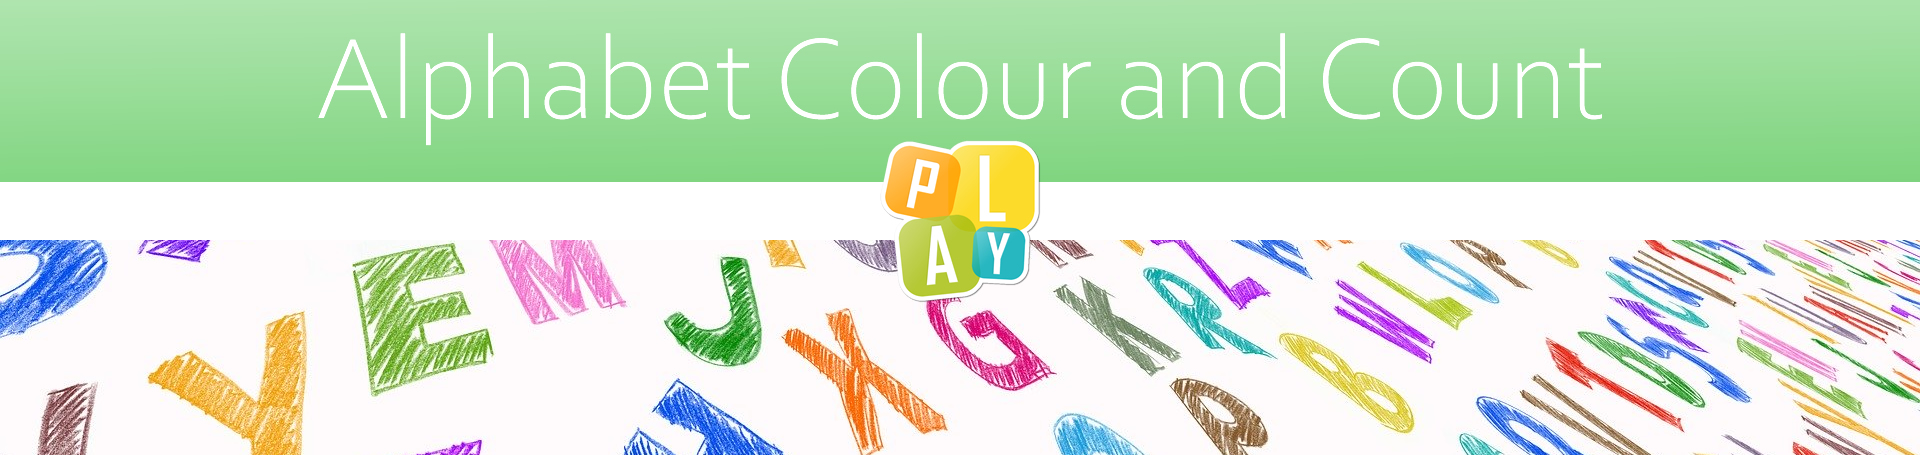 header image alphabet colour and count